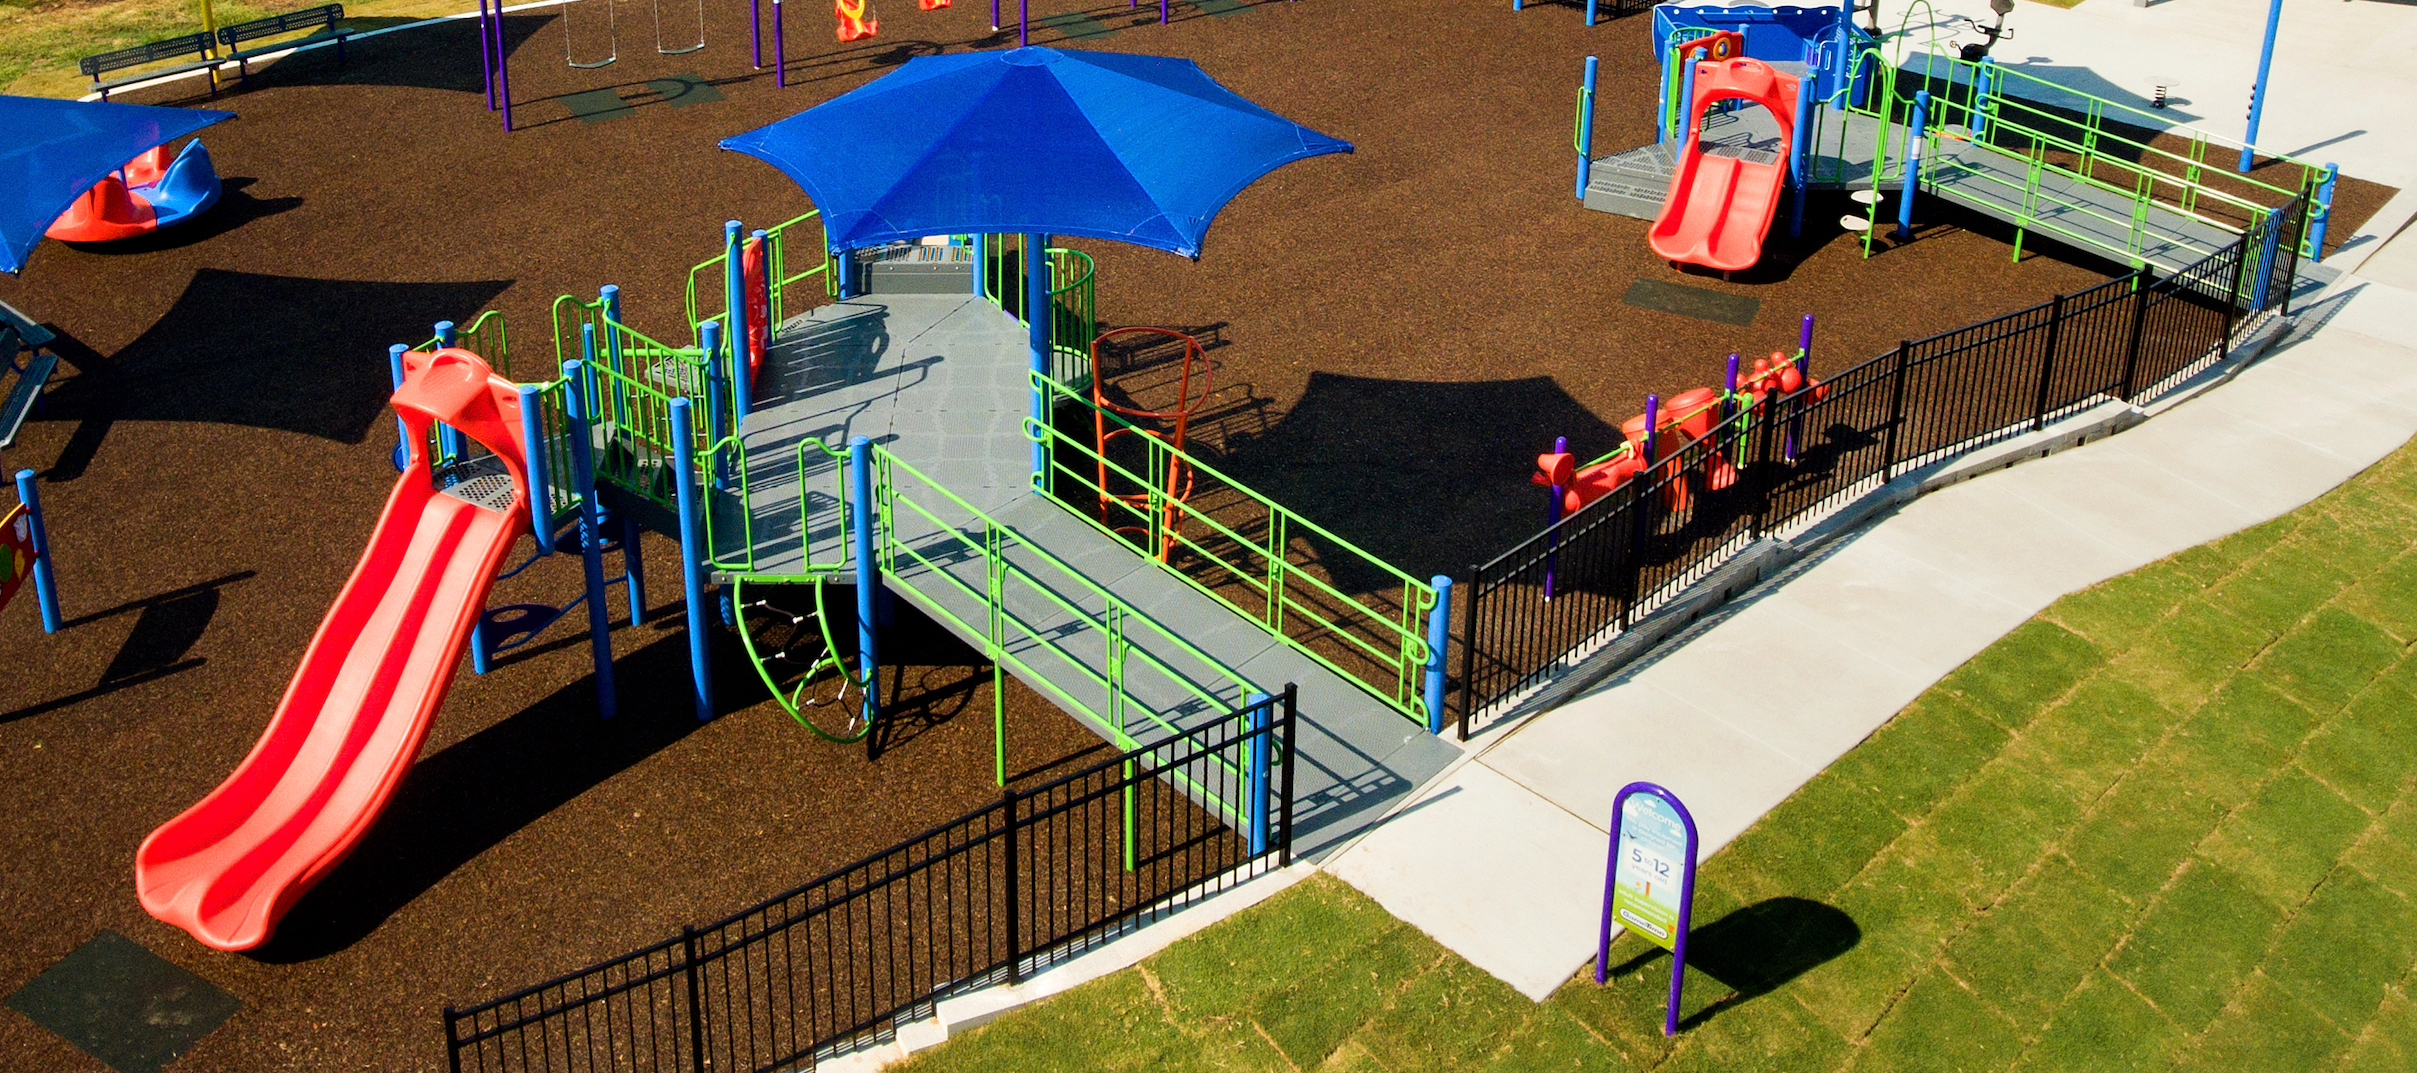 Playground planning 101 location location location gametime for example utilizing berms the level space shelf or raised barrier separating two areas with ramped play spaces is a great way to achieve higher deck baanklon Gallery